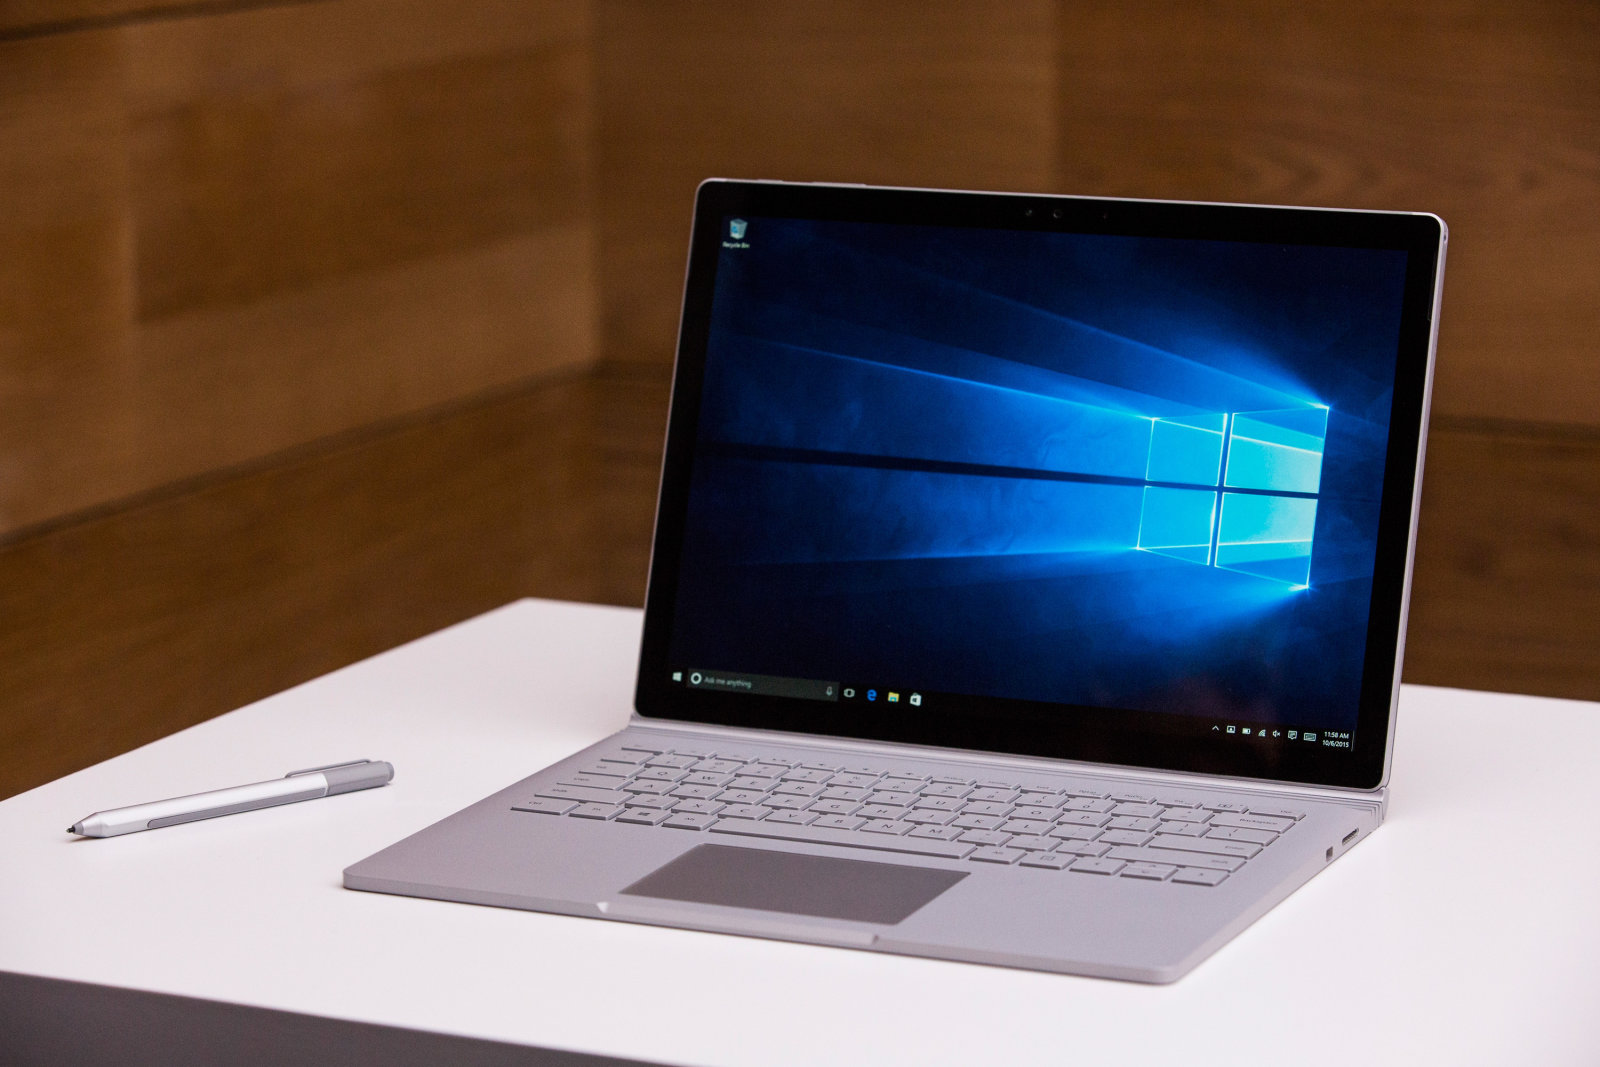 microsoft surface book 1 tb version and surface pro 4 reach the uk with pretty hefty prices. Black Bedroom Furniture Sets. Home Design Ideas